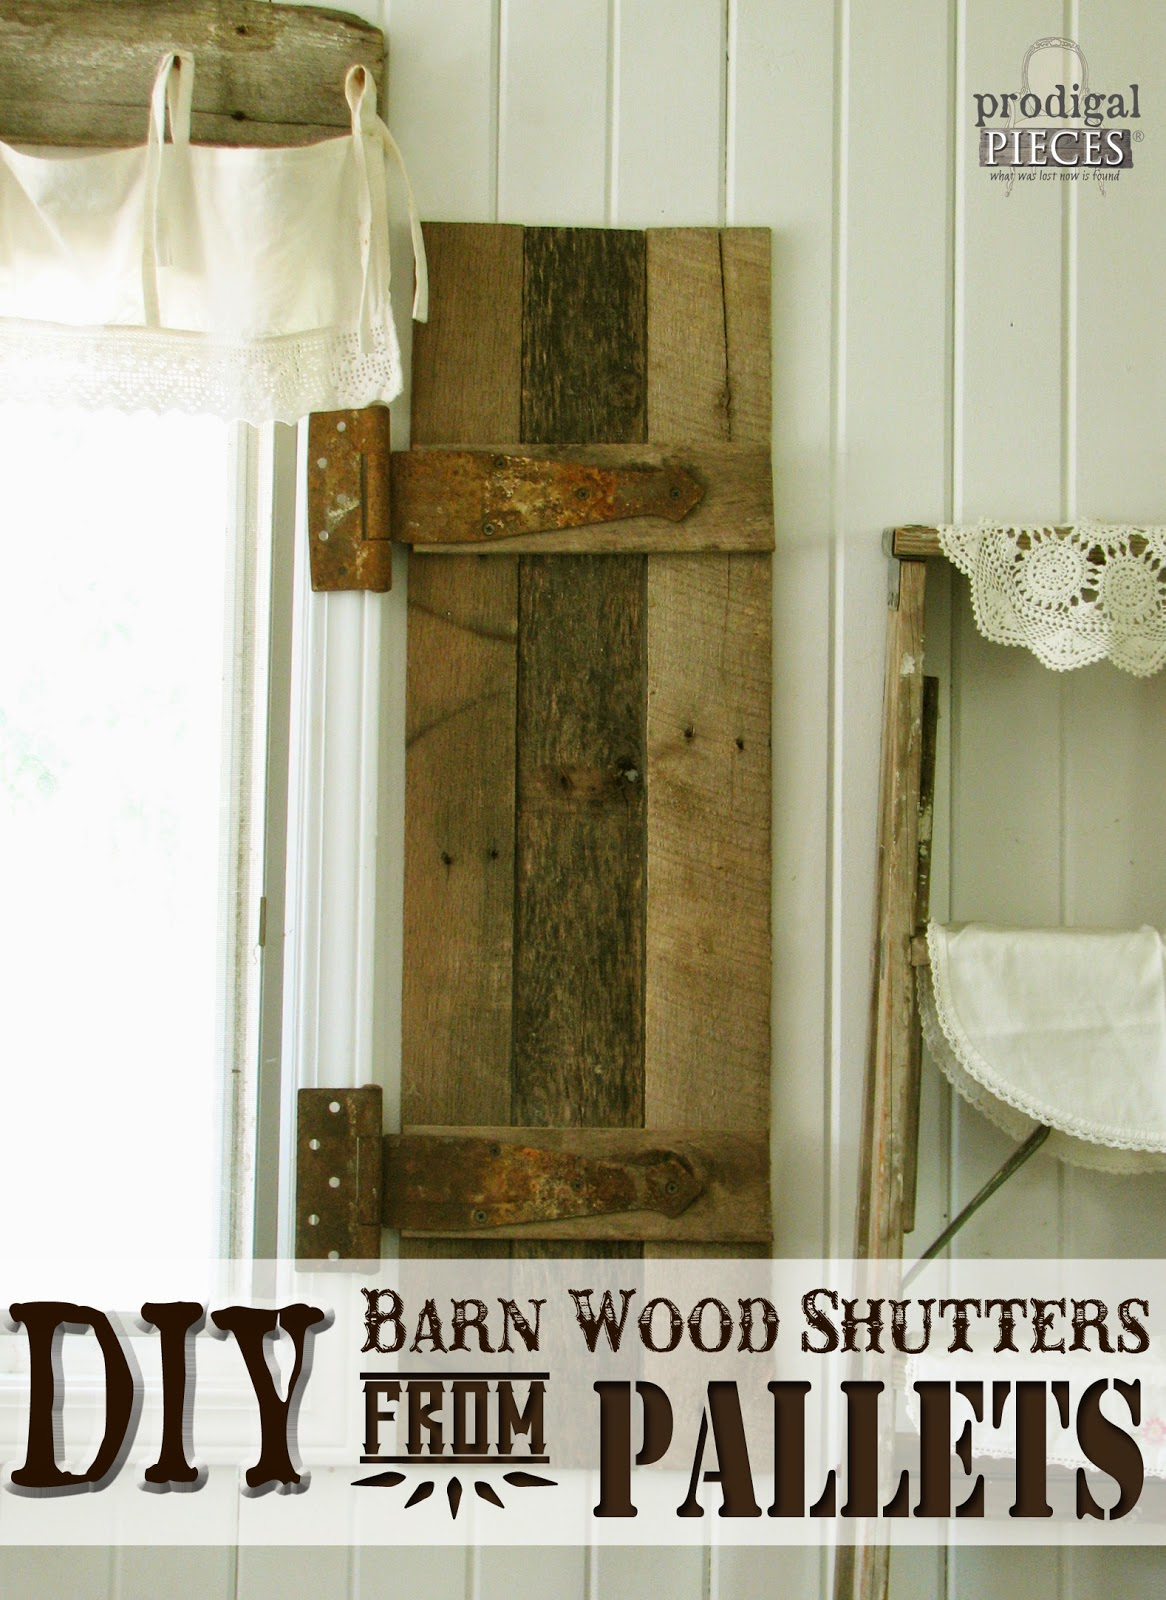 DIY Barn Wood Shutters from Pallets by Prodigal Pieces www.prodigalpieces.com #prodigalpieces